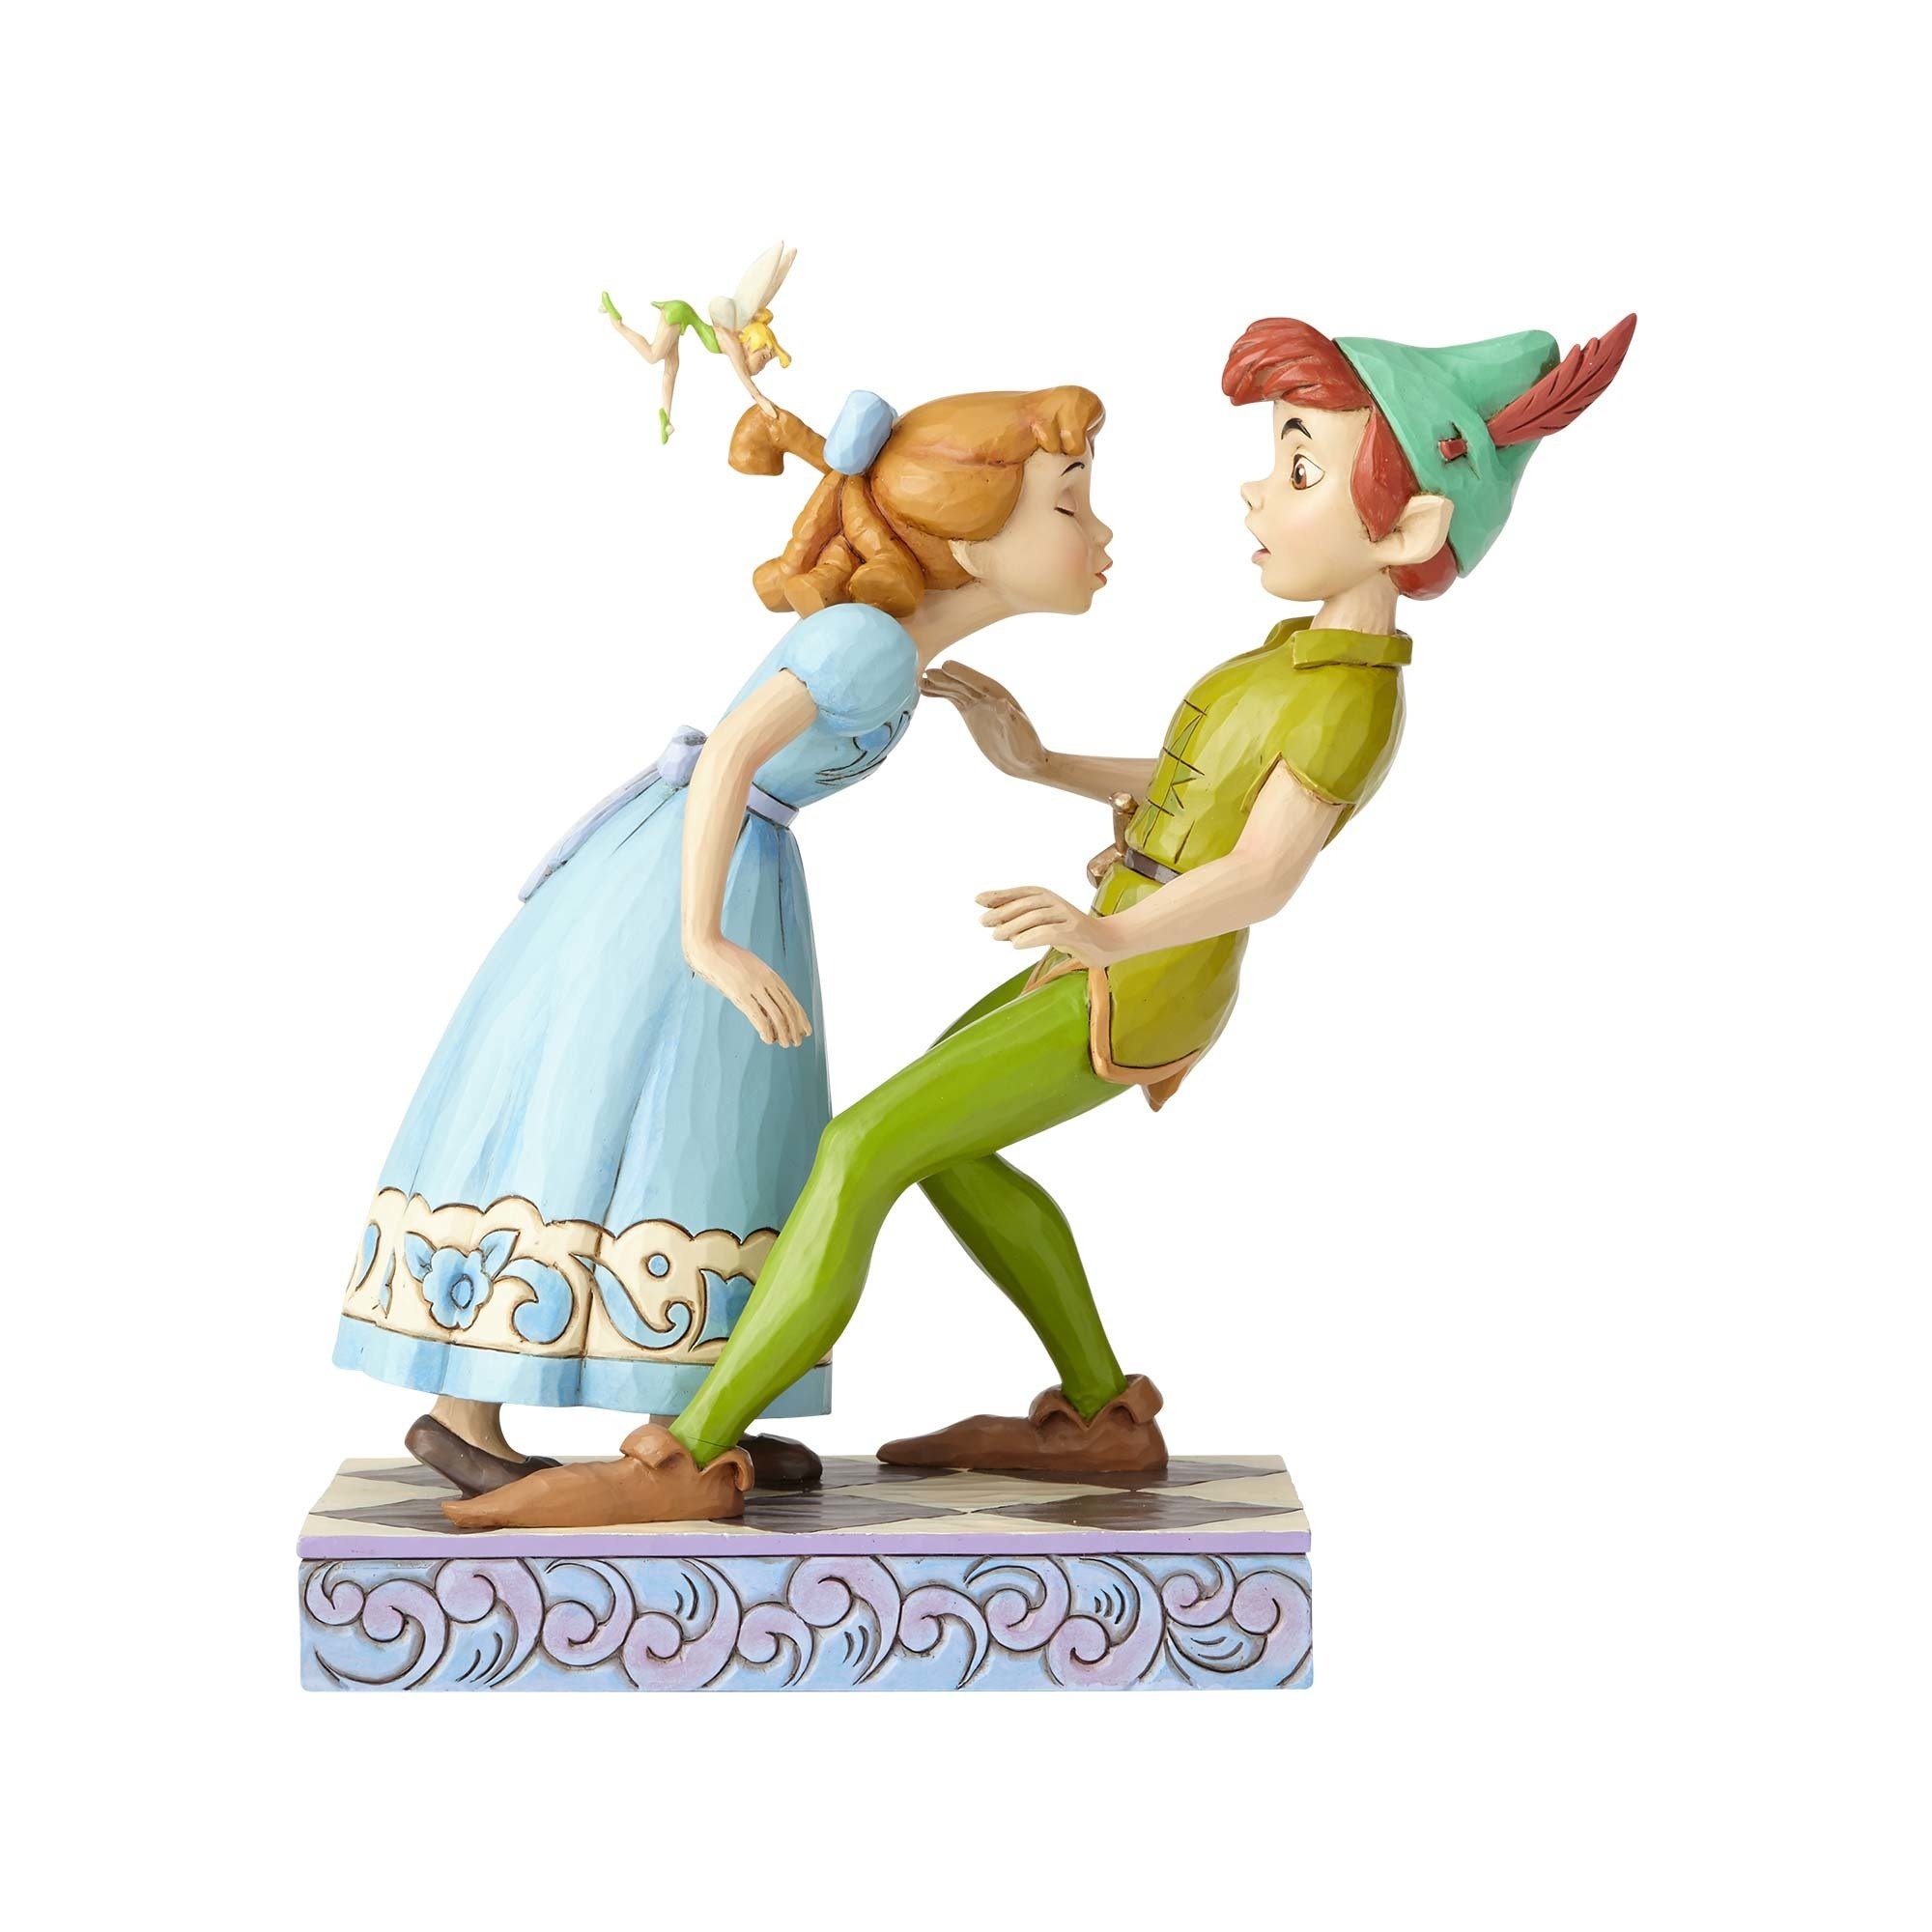 Enesco Disney Traditions by Jim Shore 65th Anniversary Peter Pan and Wendy Stone Resin, 7.6'' Figurine, 7.6 Inches, Multicolor